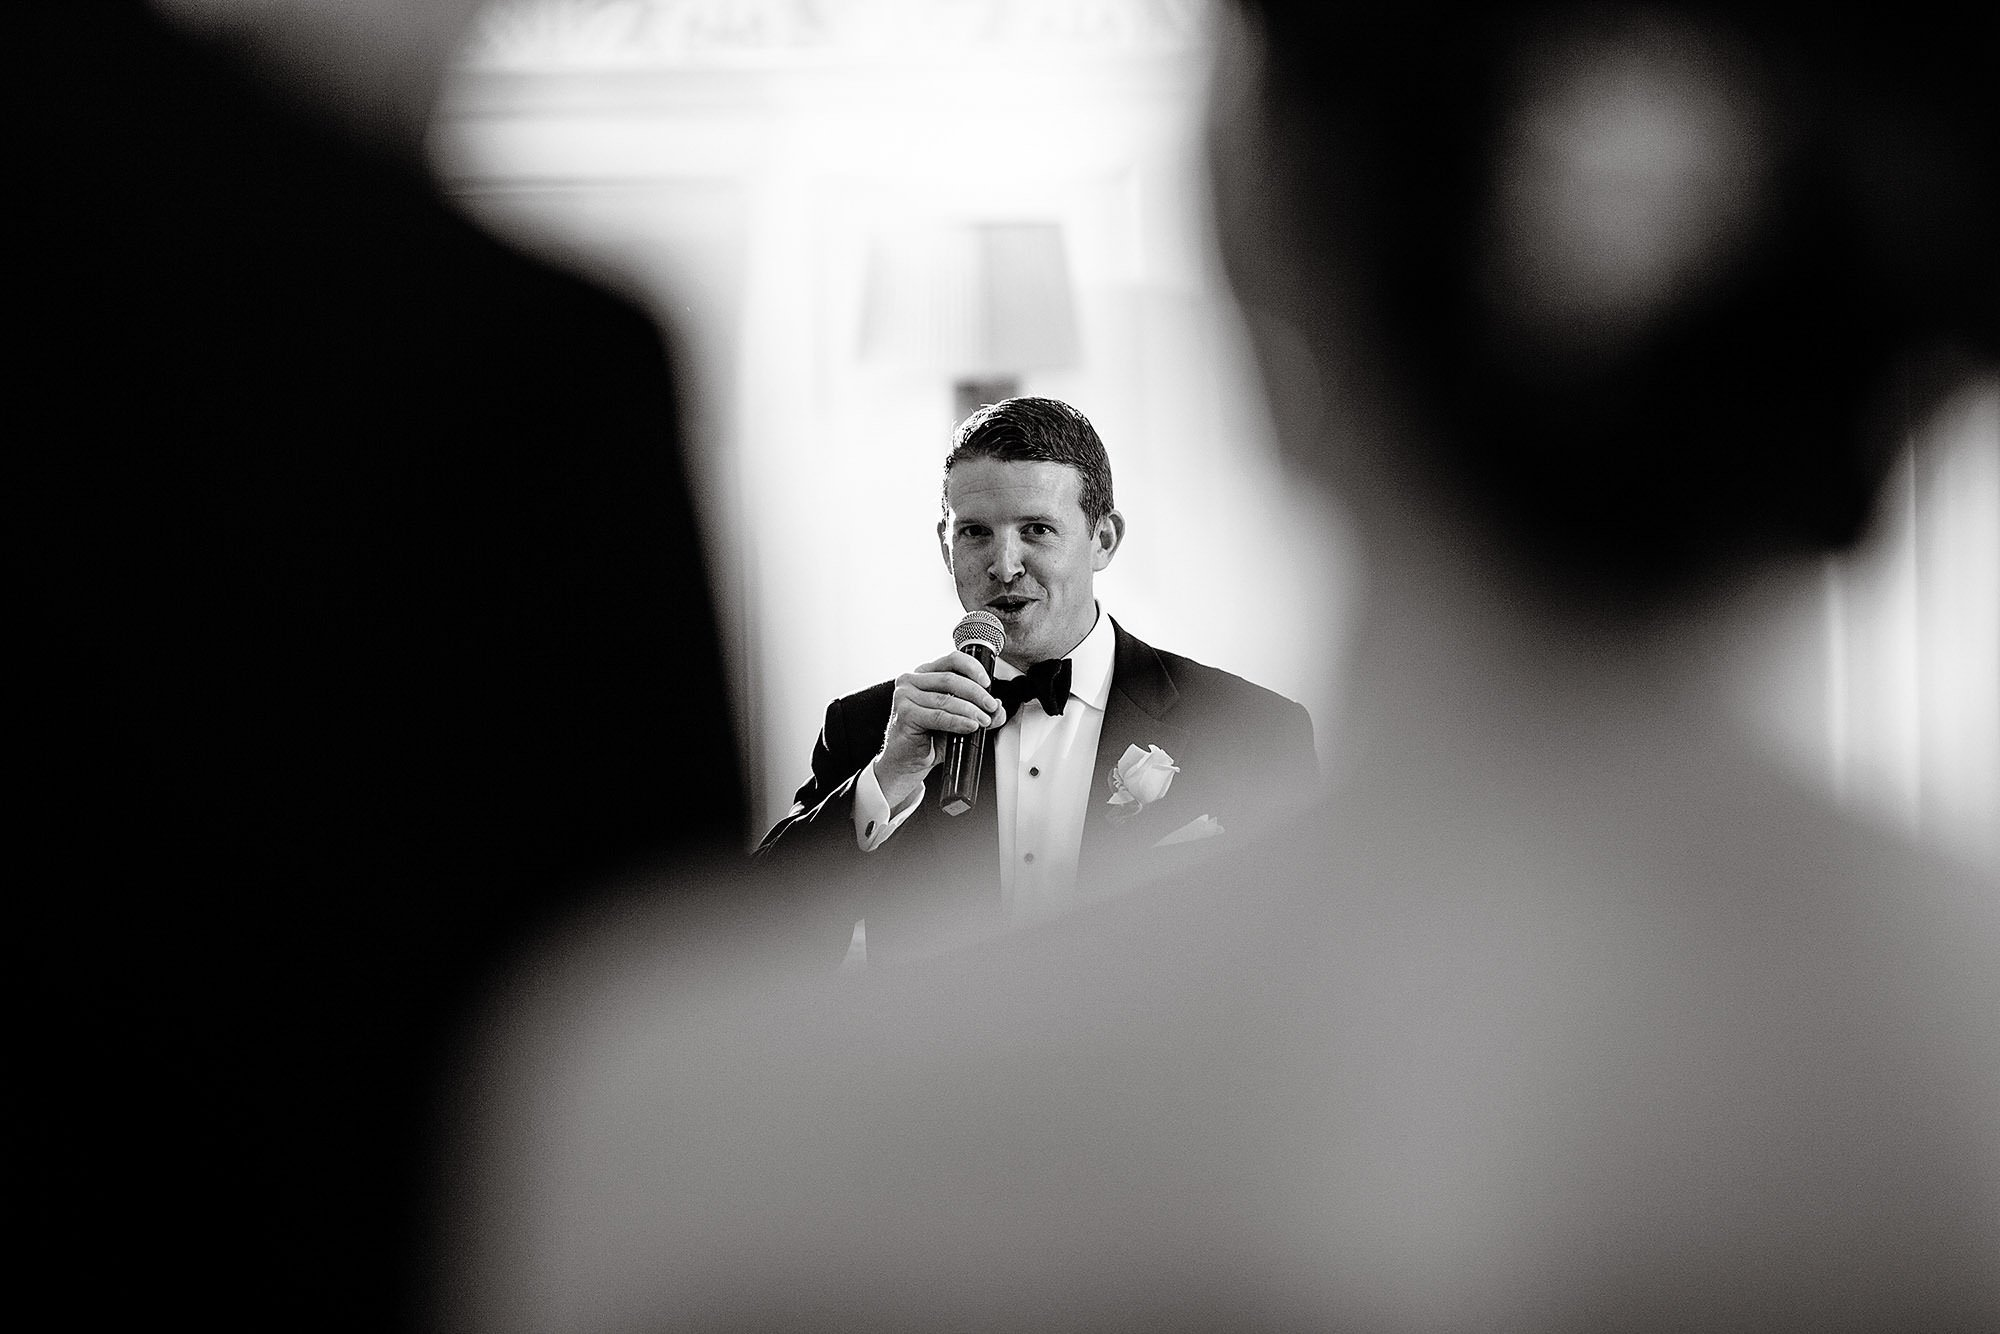 The best man gives a toast during the reception.